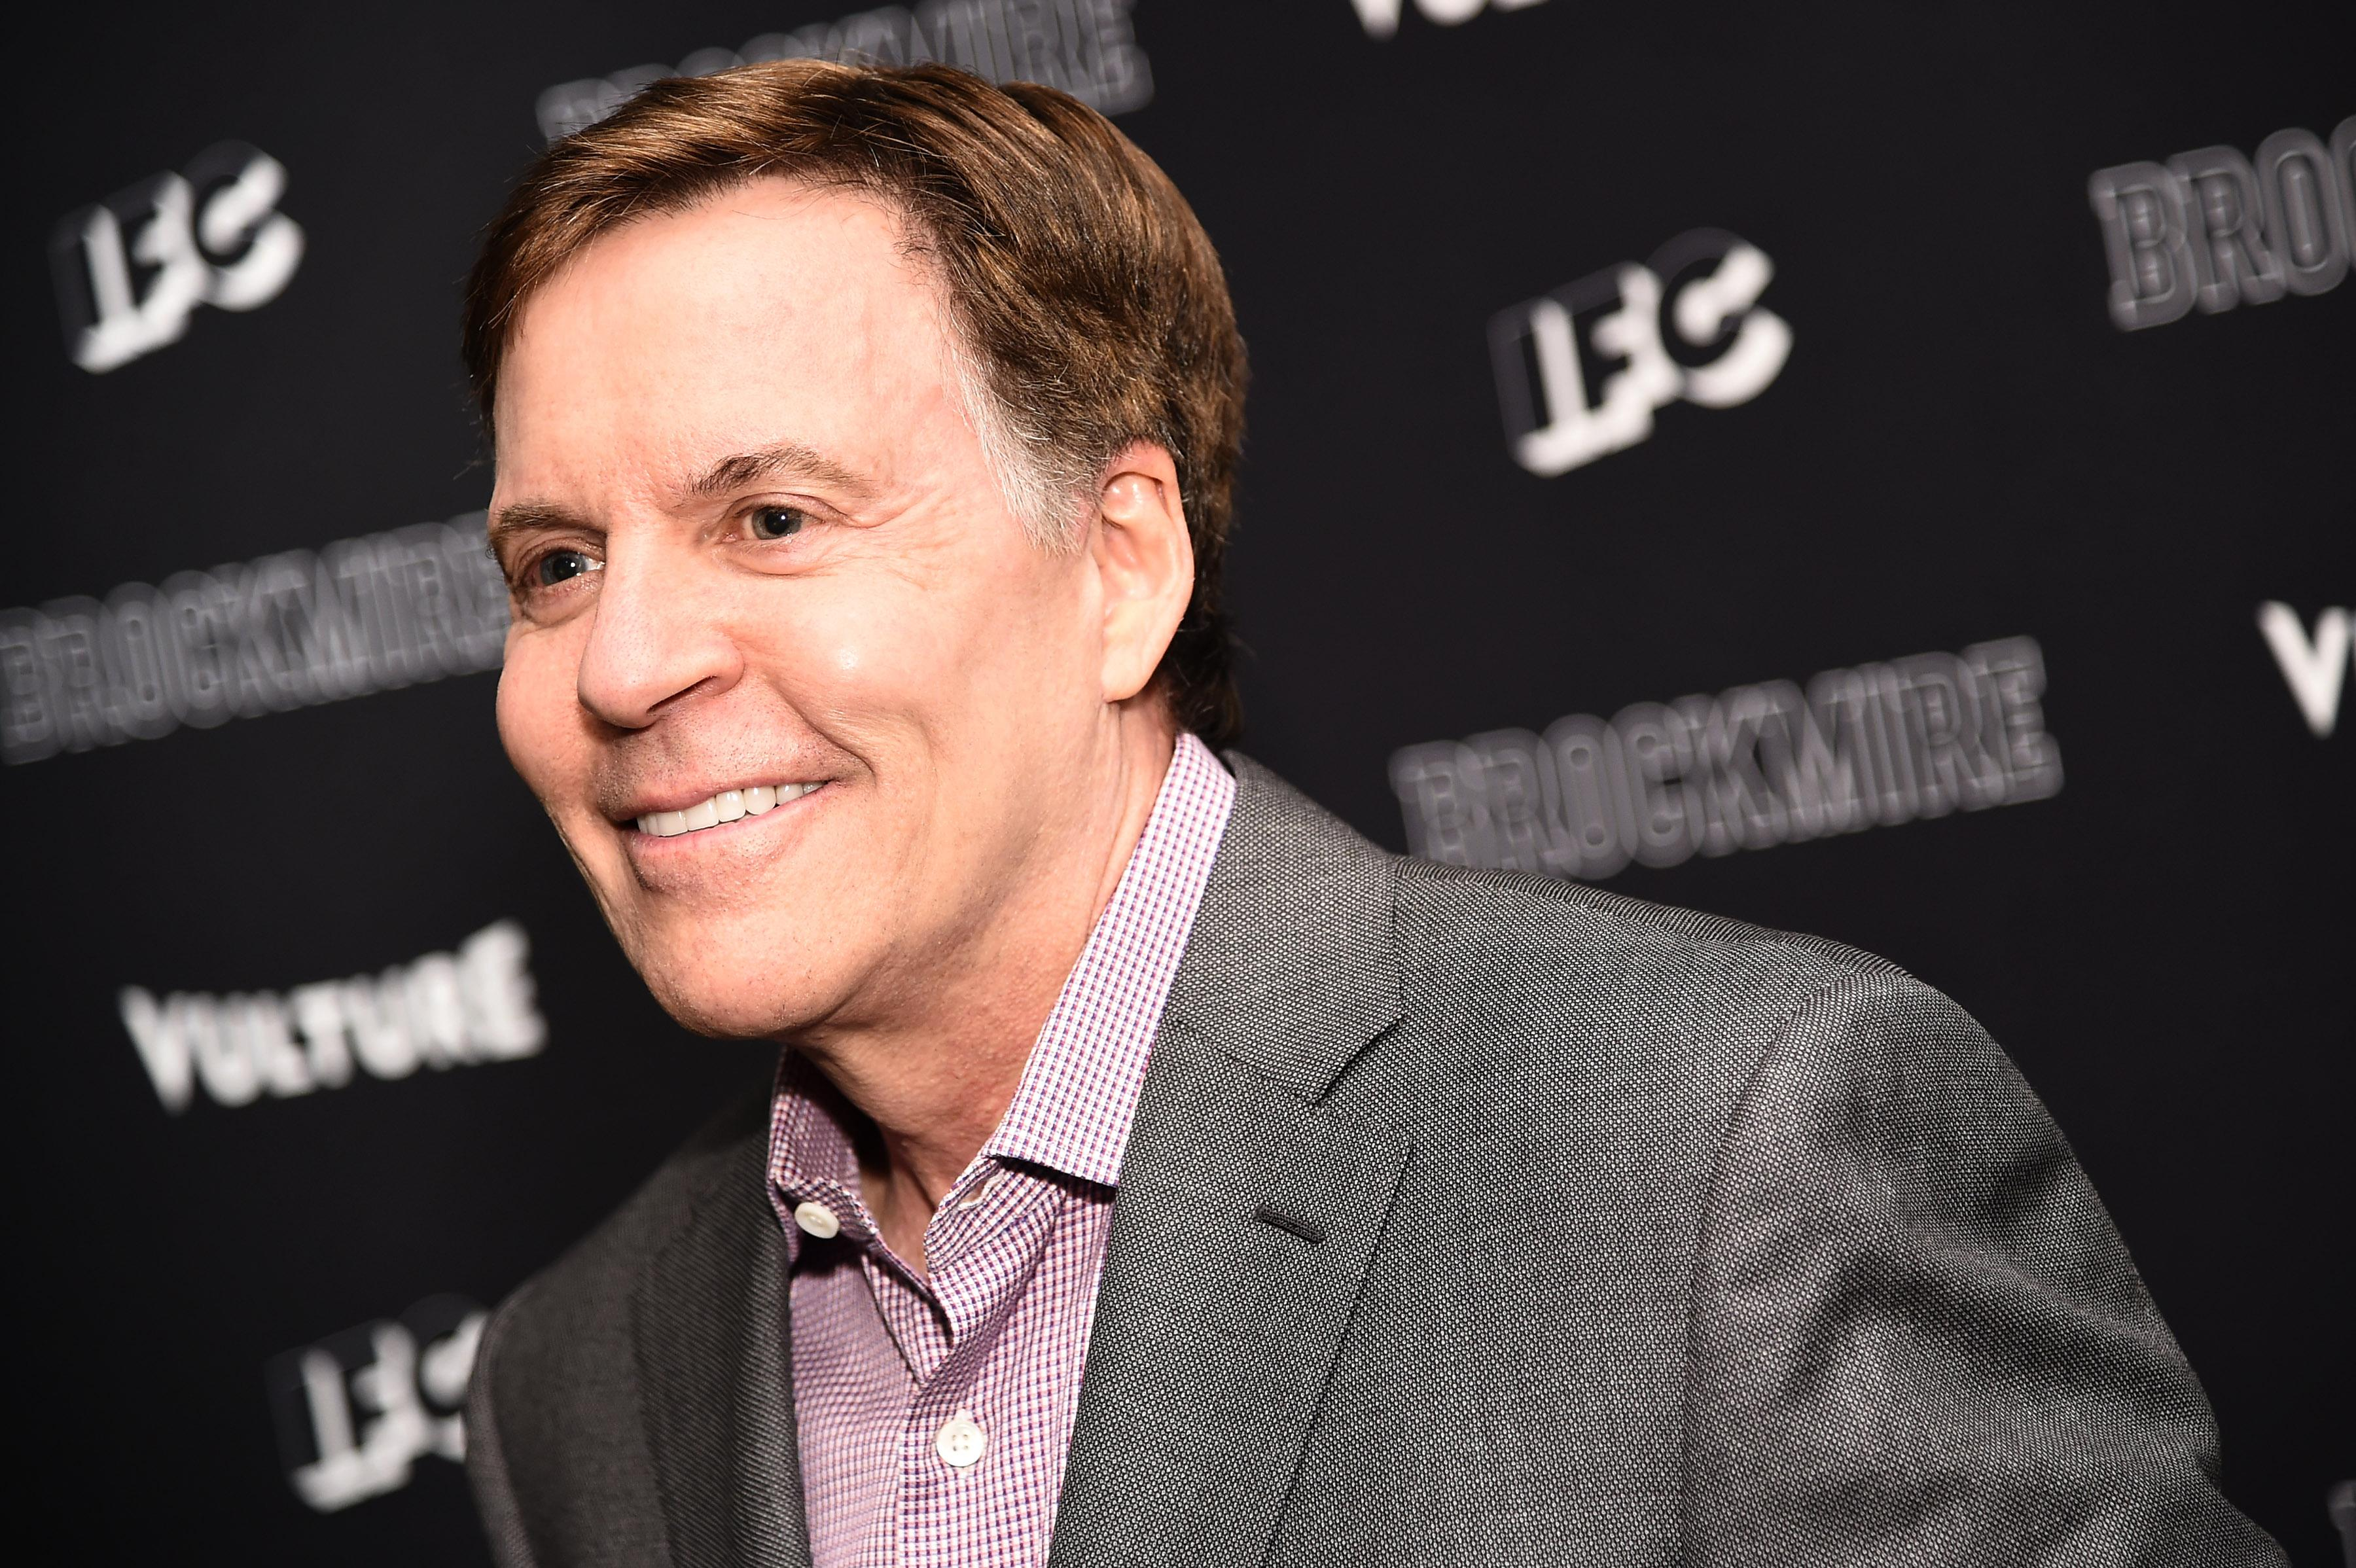 Bob Costas confirmed he was removed from Super Bowl broadcast due to comments on concussions, CTE in NFL